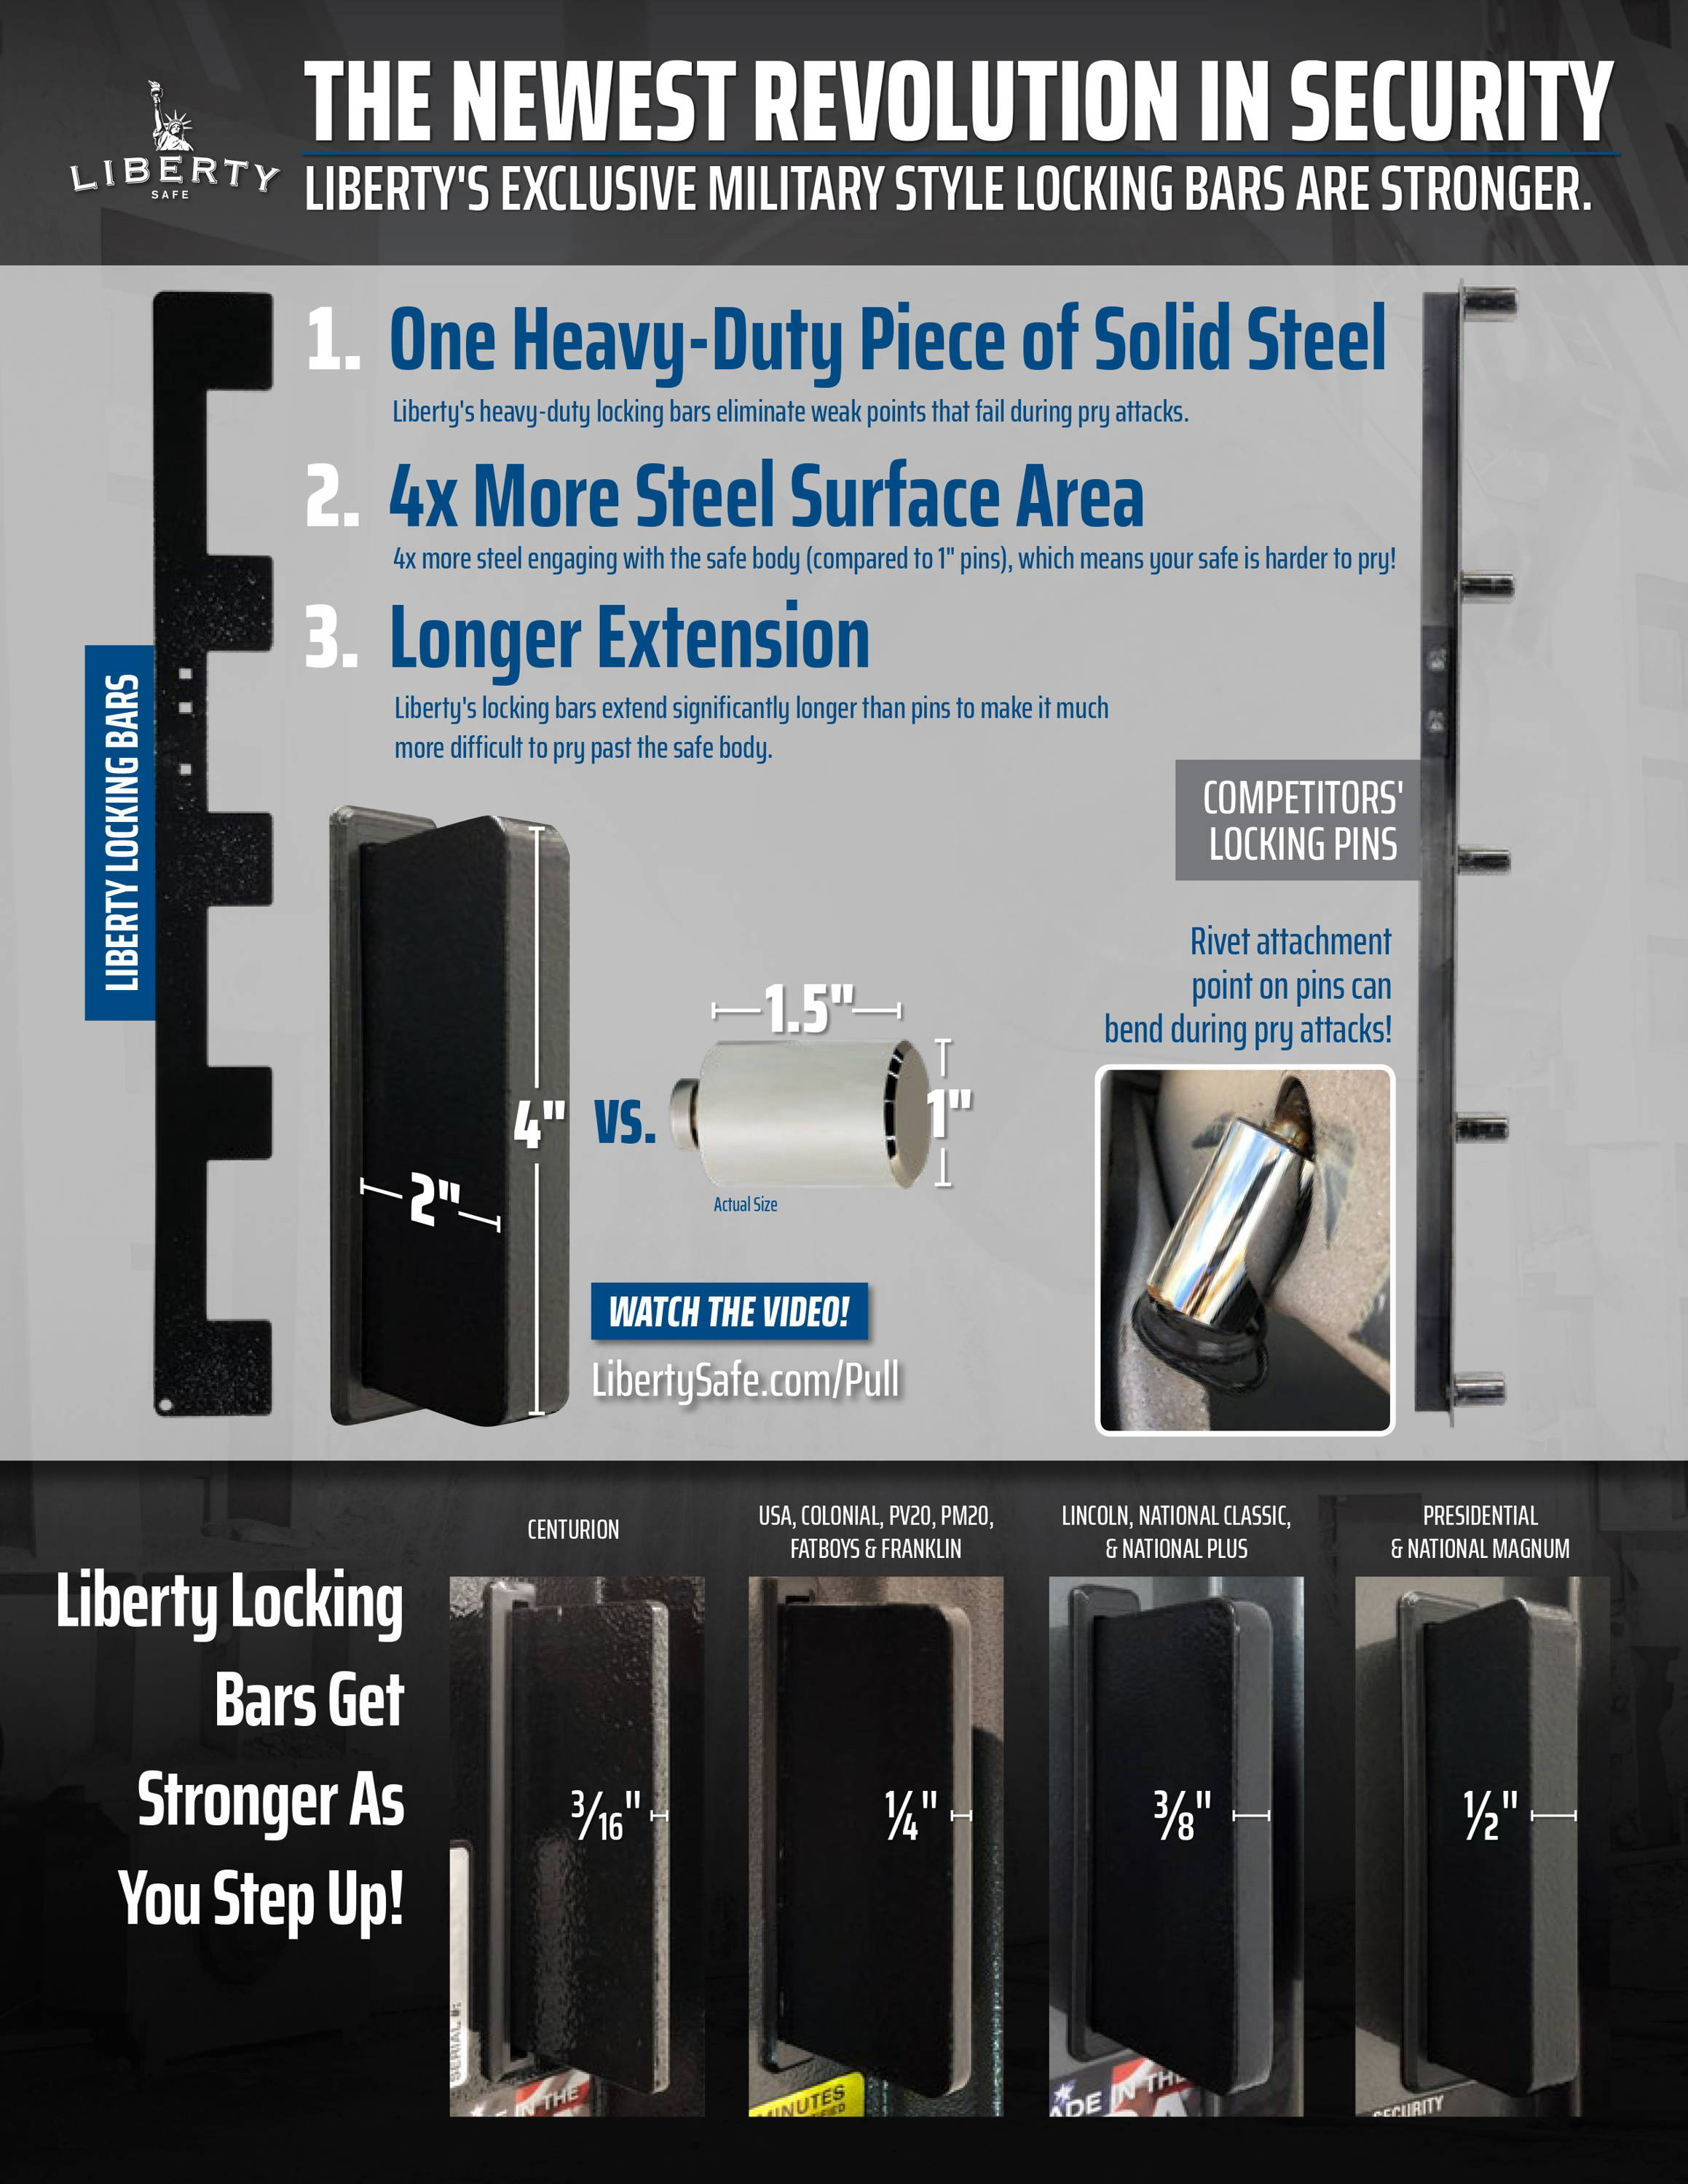 Comparison of Liberty Safe military locking bar versus competitors locking bolts